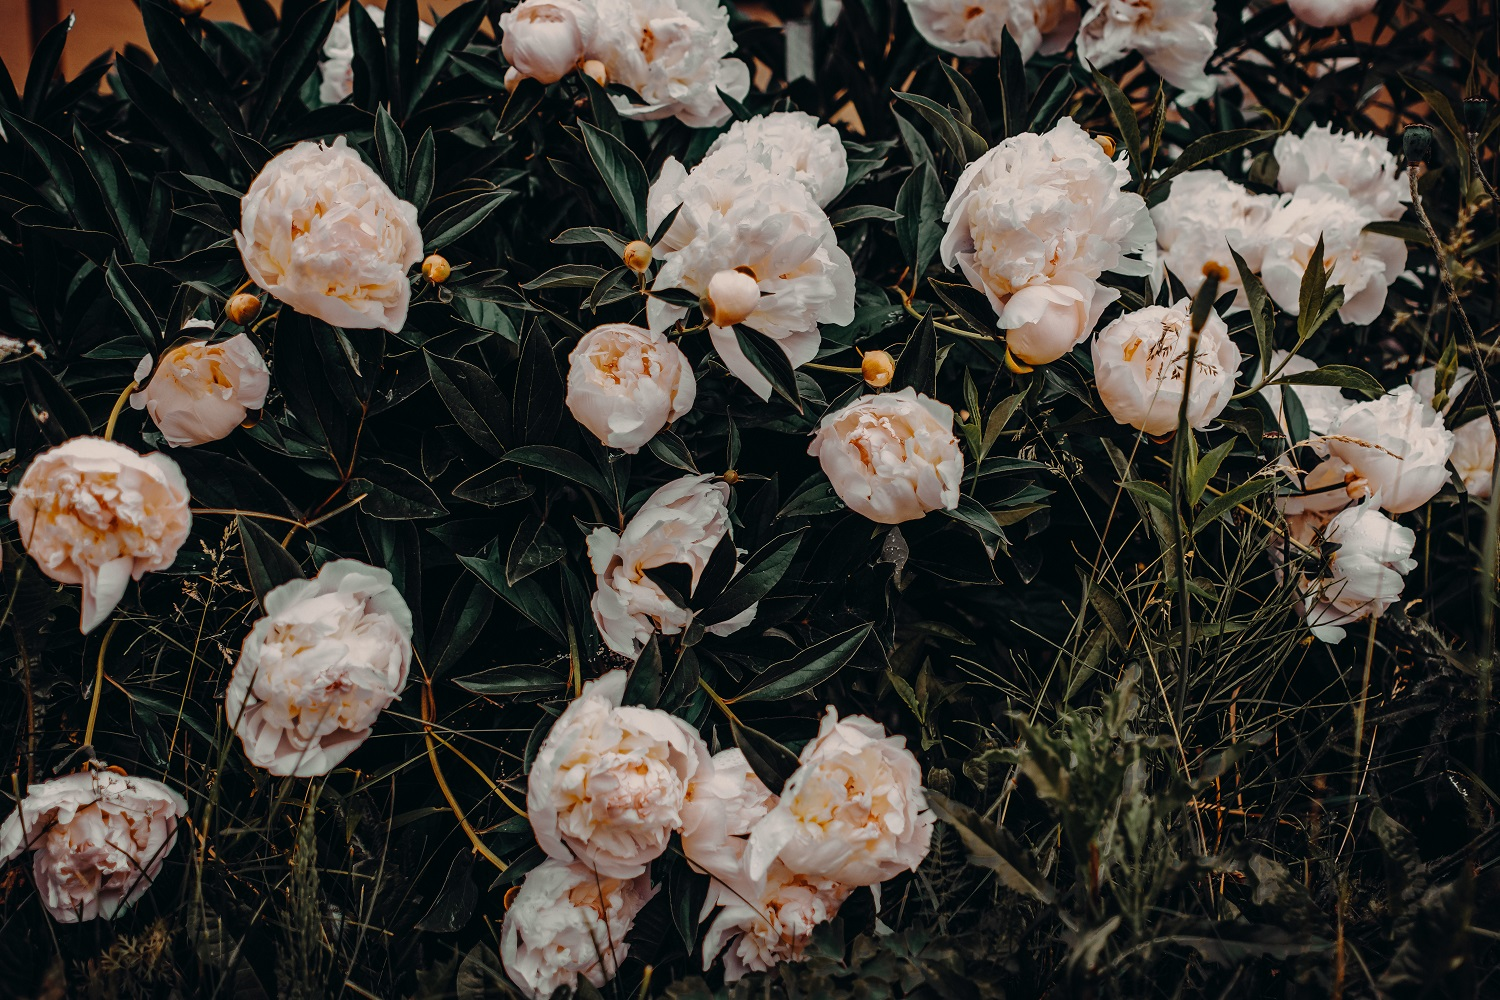 5 Expressive Colors of Flowers that Depict Different Emotions